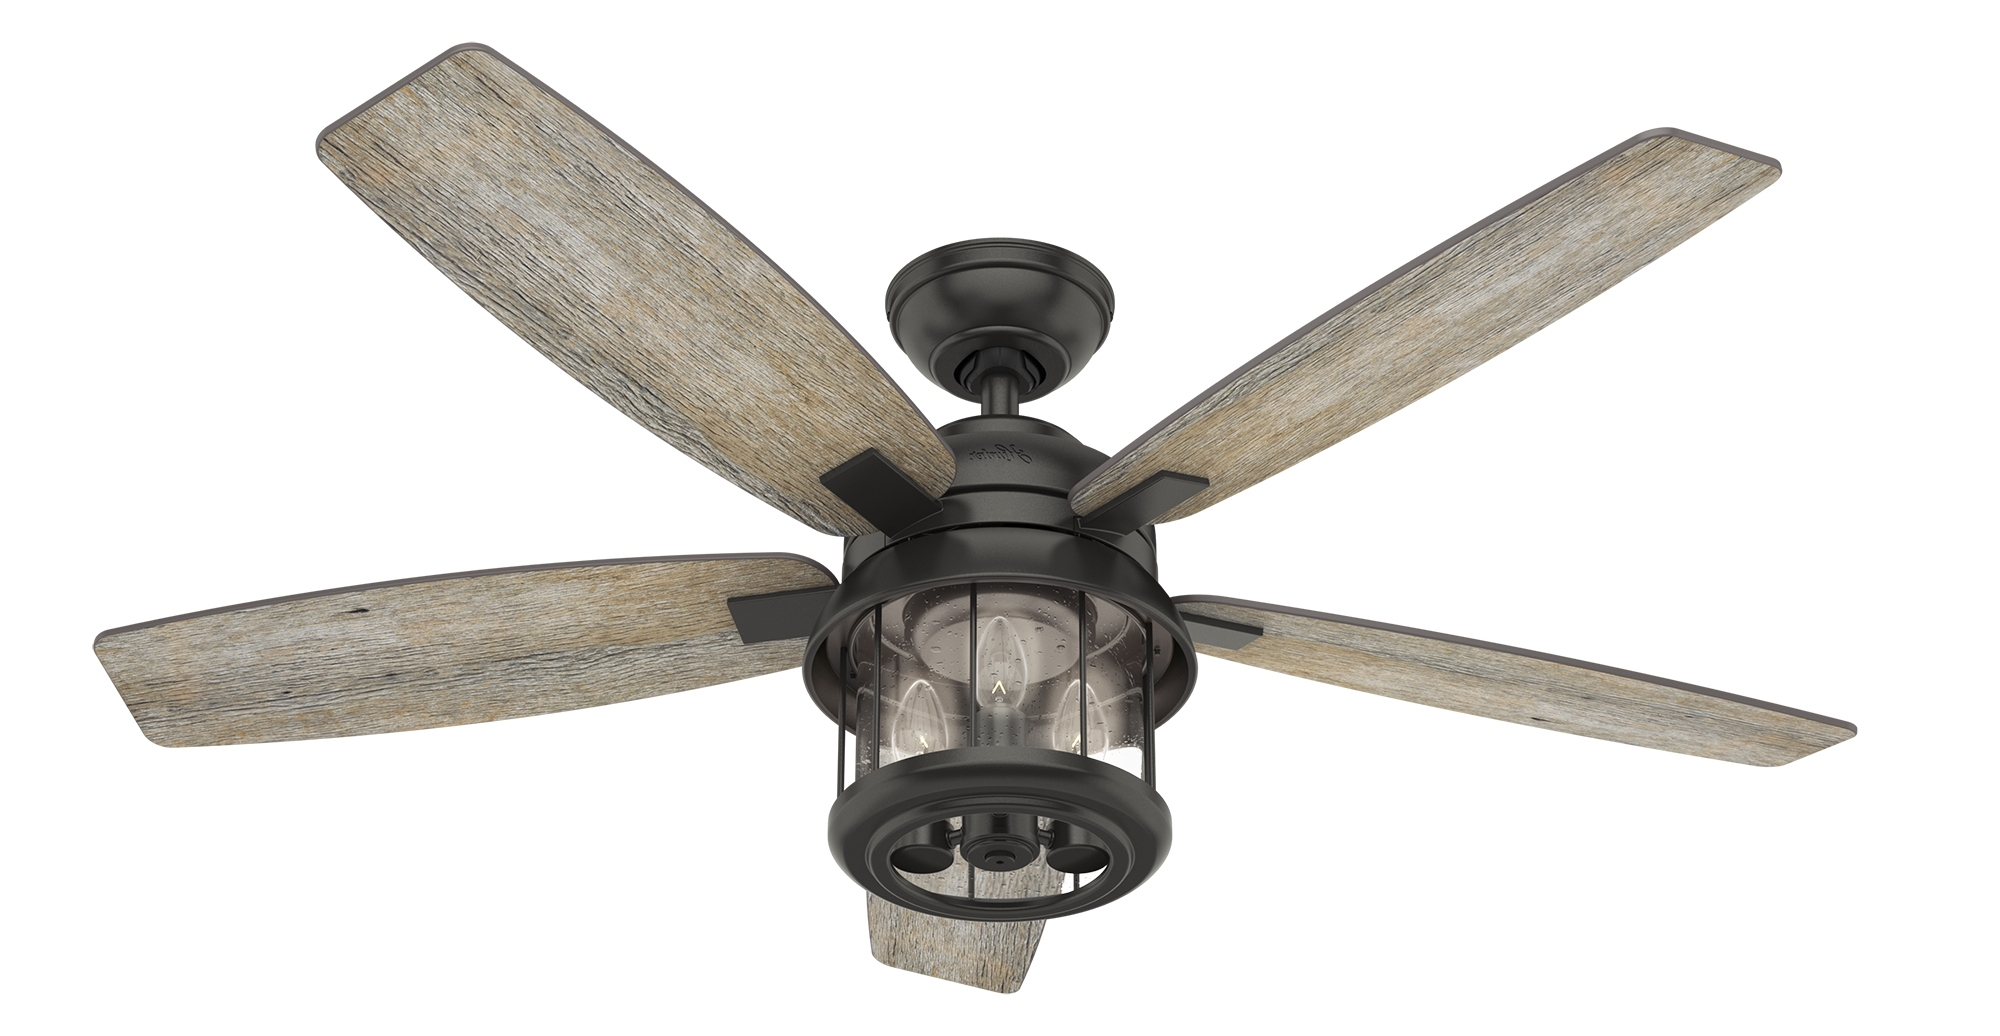 2018 Coral Bay Lantern Outdoor Ceiling Fan With Led Edison Light – Hunter Within Outdoor Ceiling Fans With Lantern (Gallery 8 of 20)